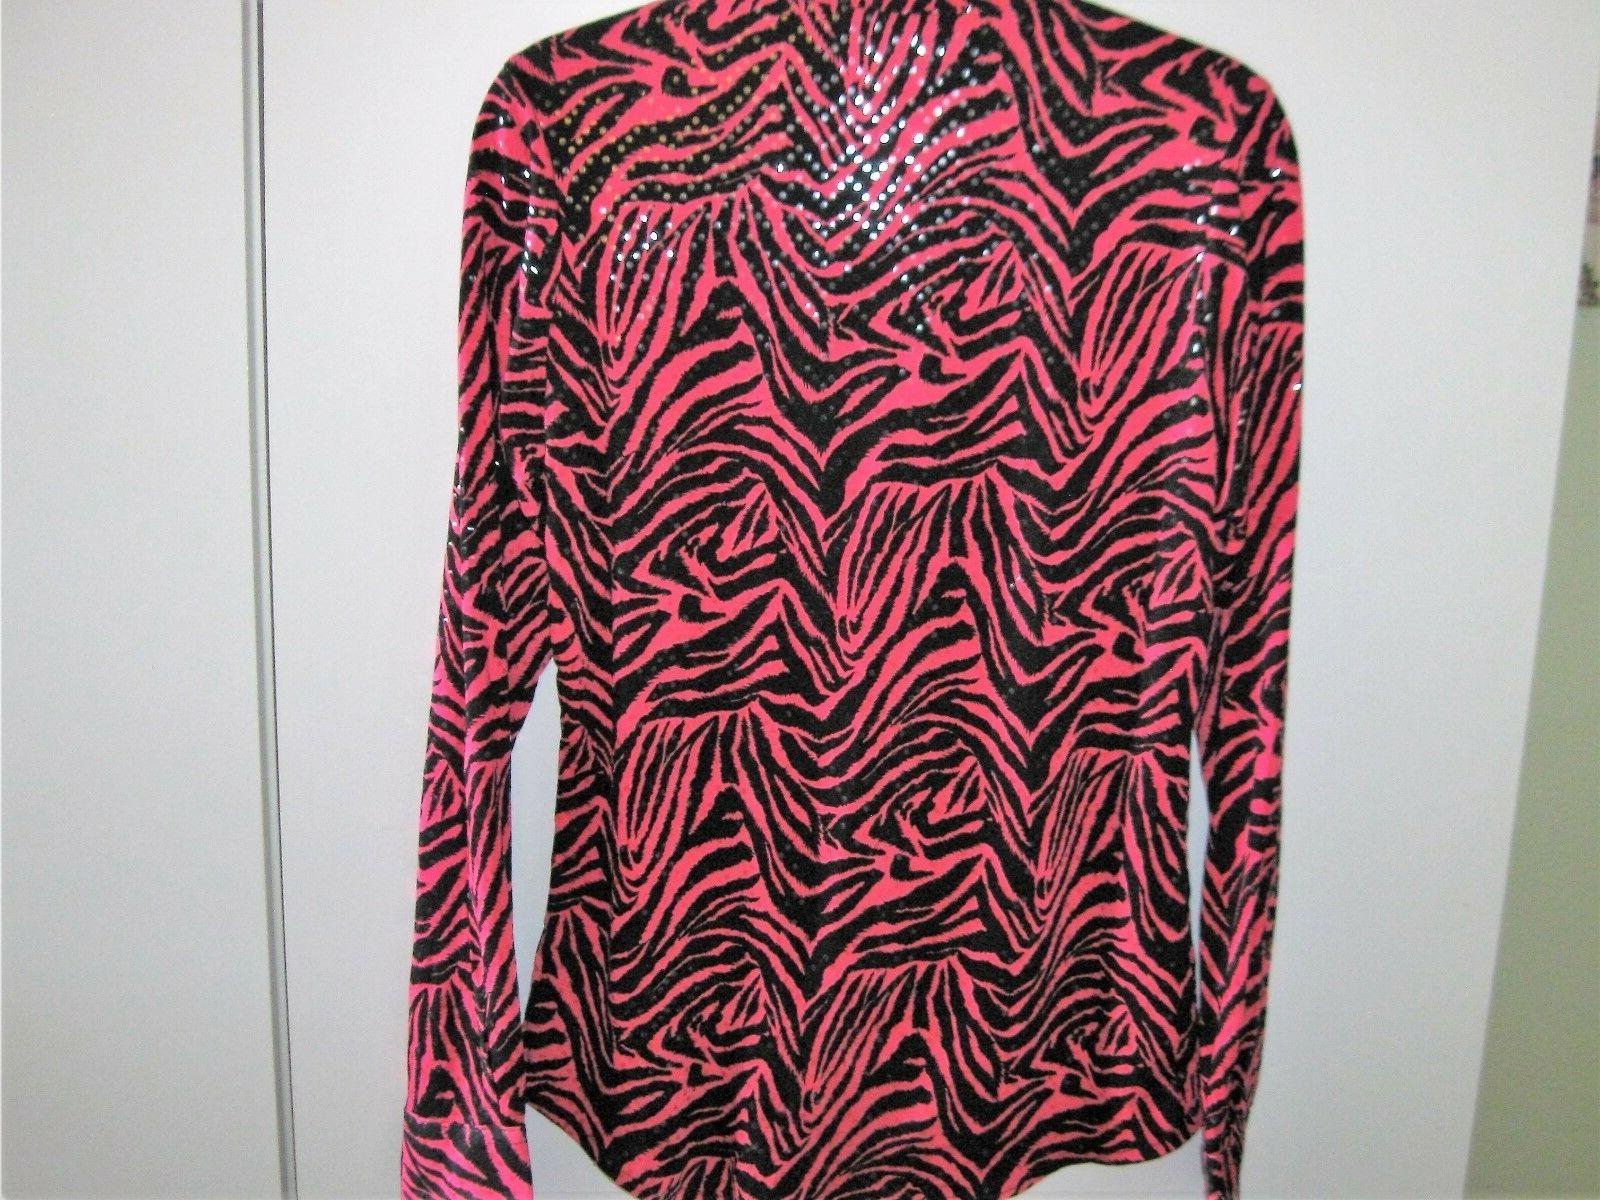 Wranger UP snap up extra pink/black